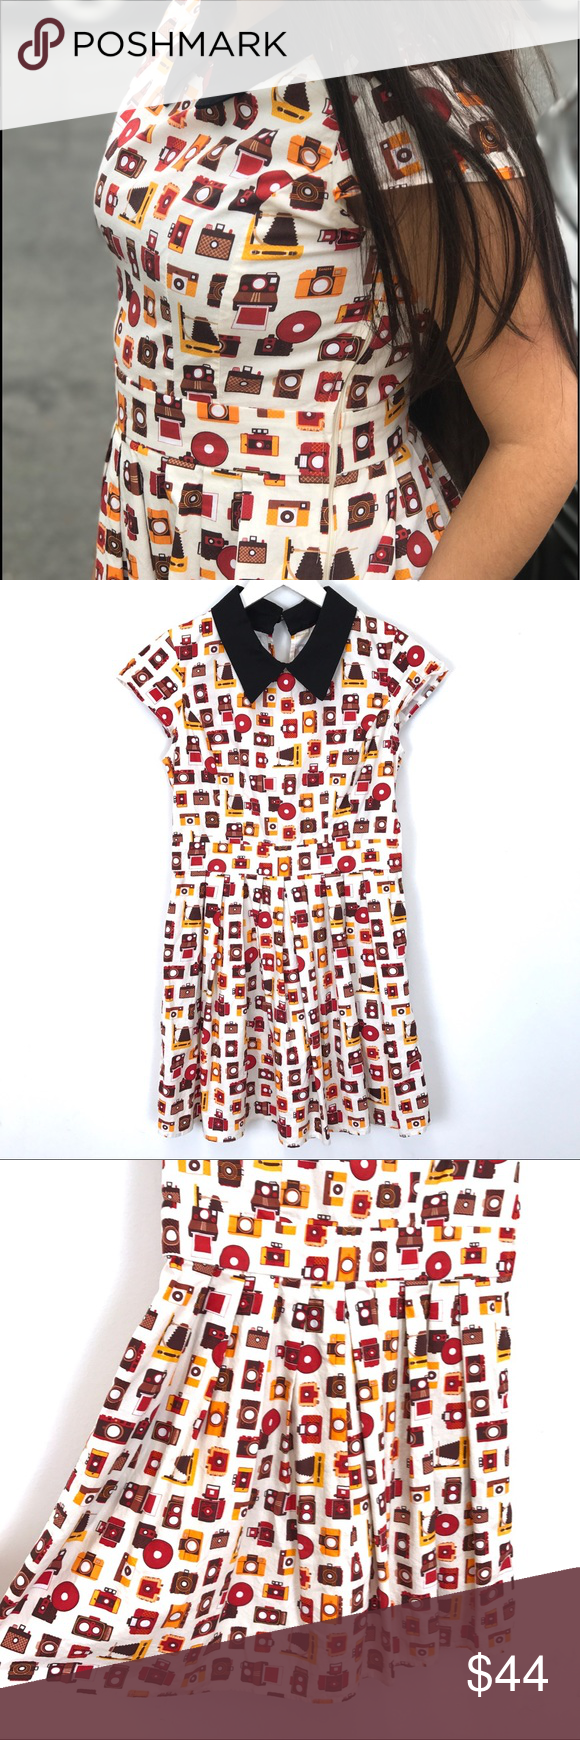 Fervour black orange dress modcloth